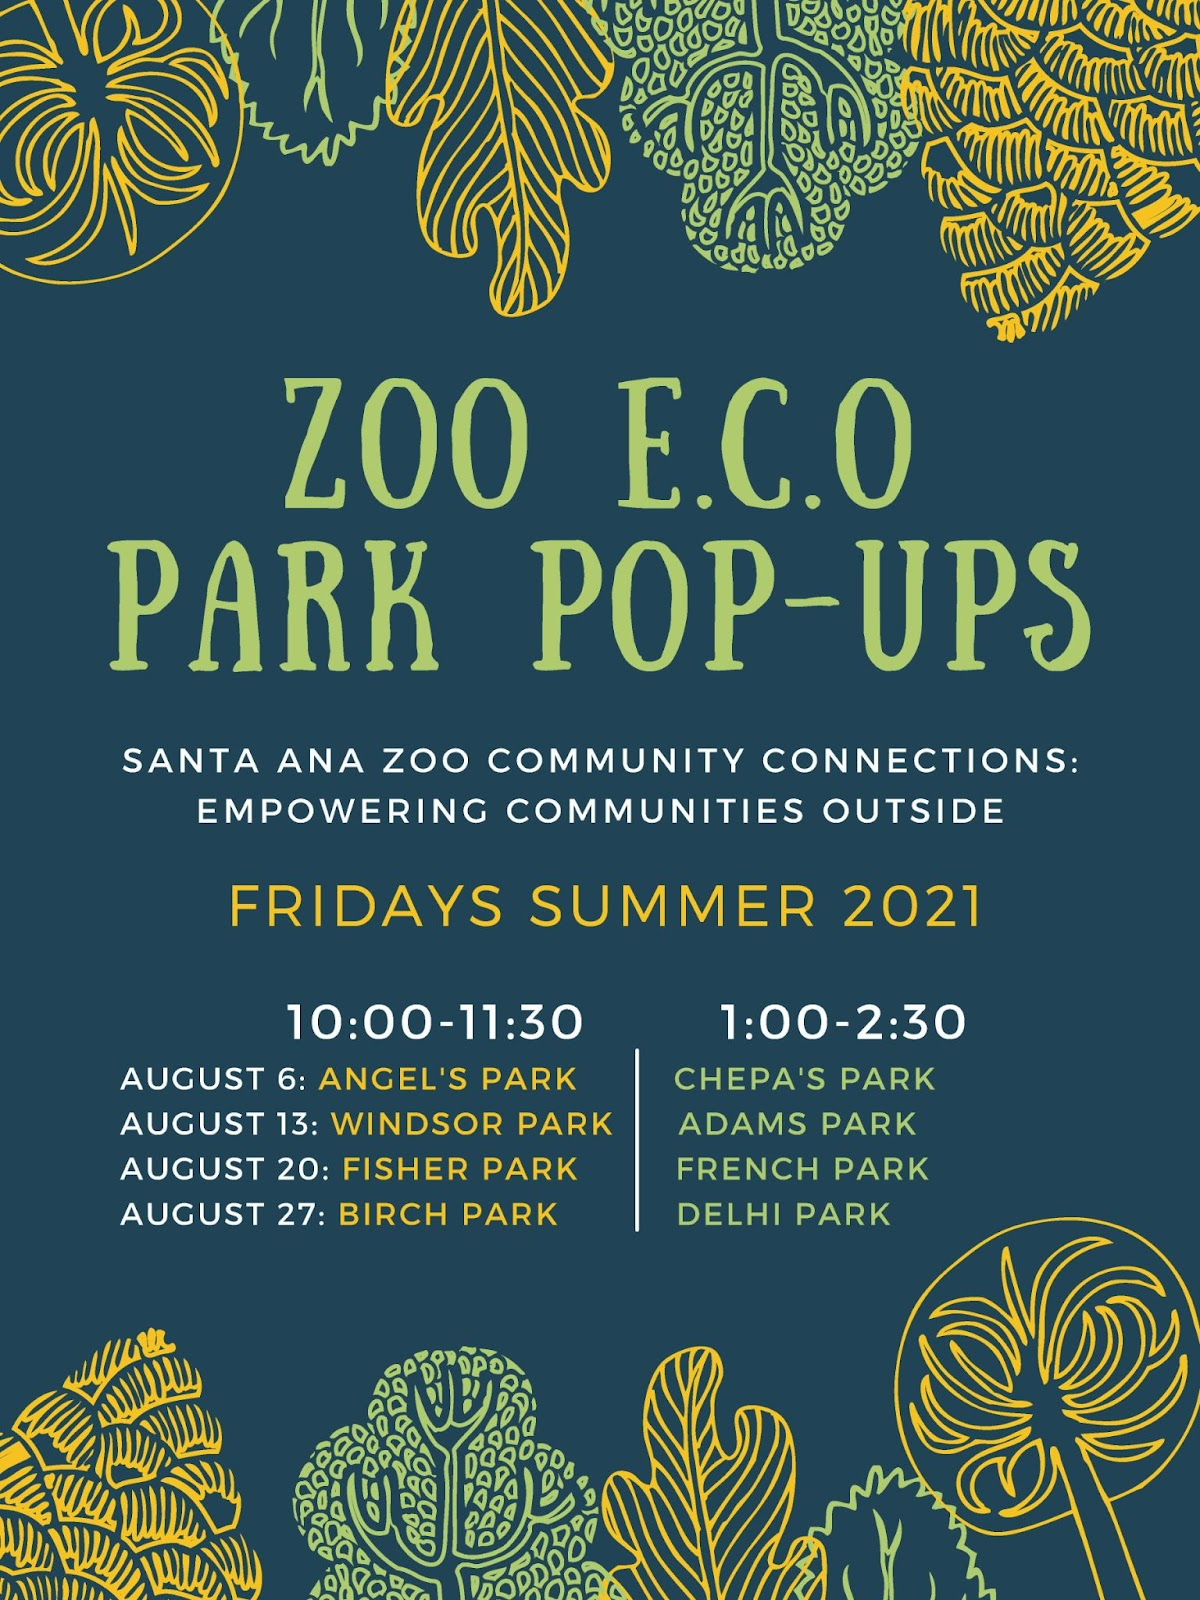 All text from this flyer is in the body of the newsletter. Zoo Eco Park Pop-ups, Santa Ana Zoo Community Connections. Empowering communities outside Fridays Summer 2021 list of dates and times, listed in the text below.